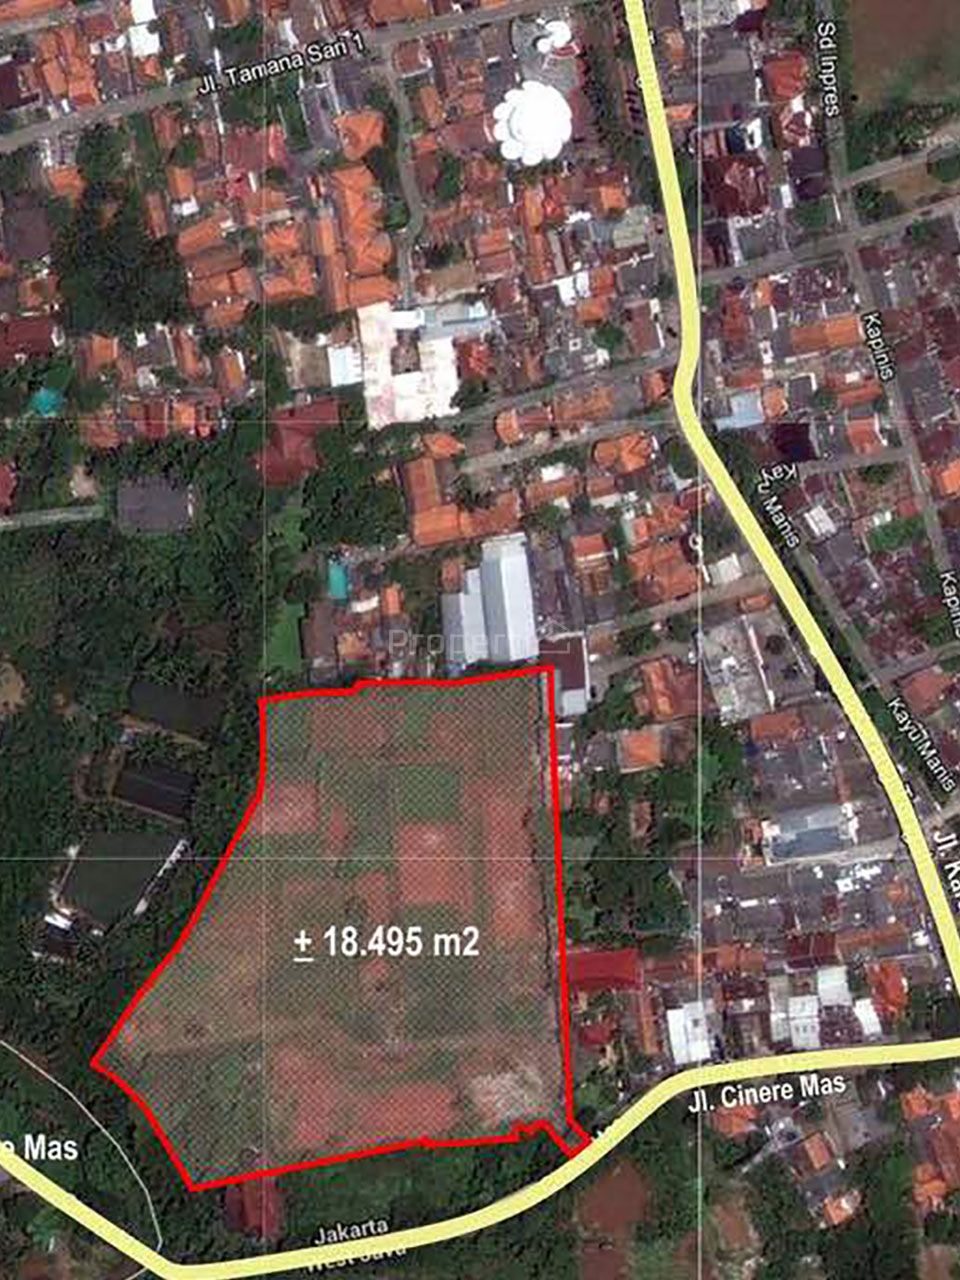 Land for Housing and Apartment Allocation in Cinere, Cilandak